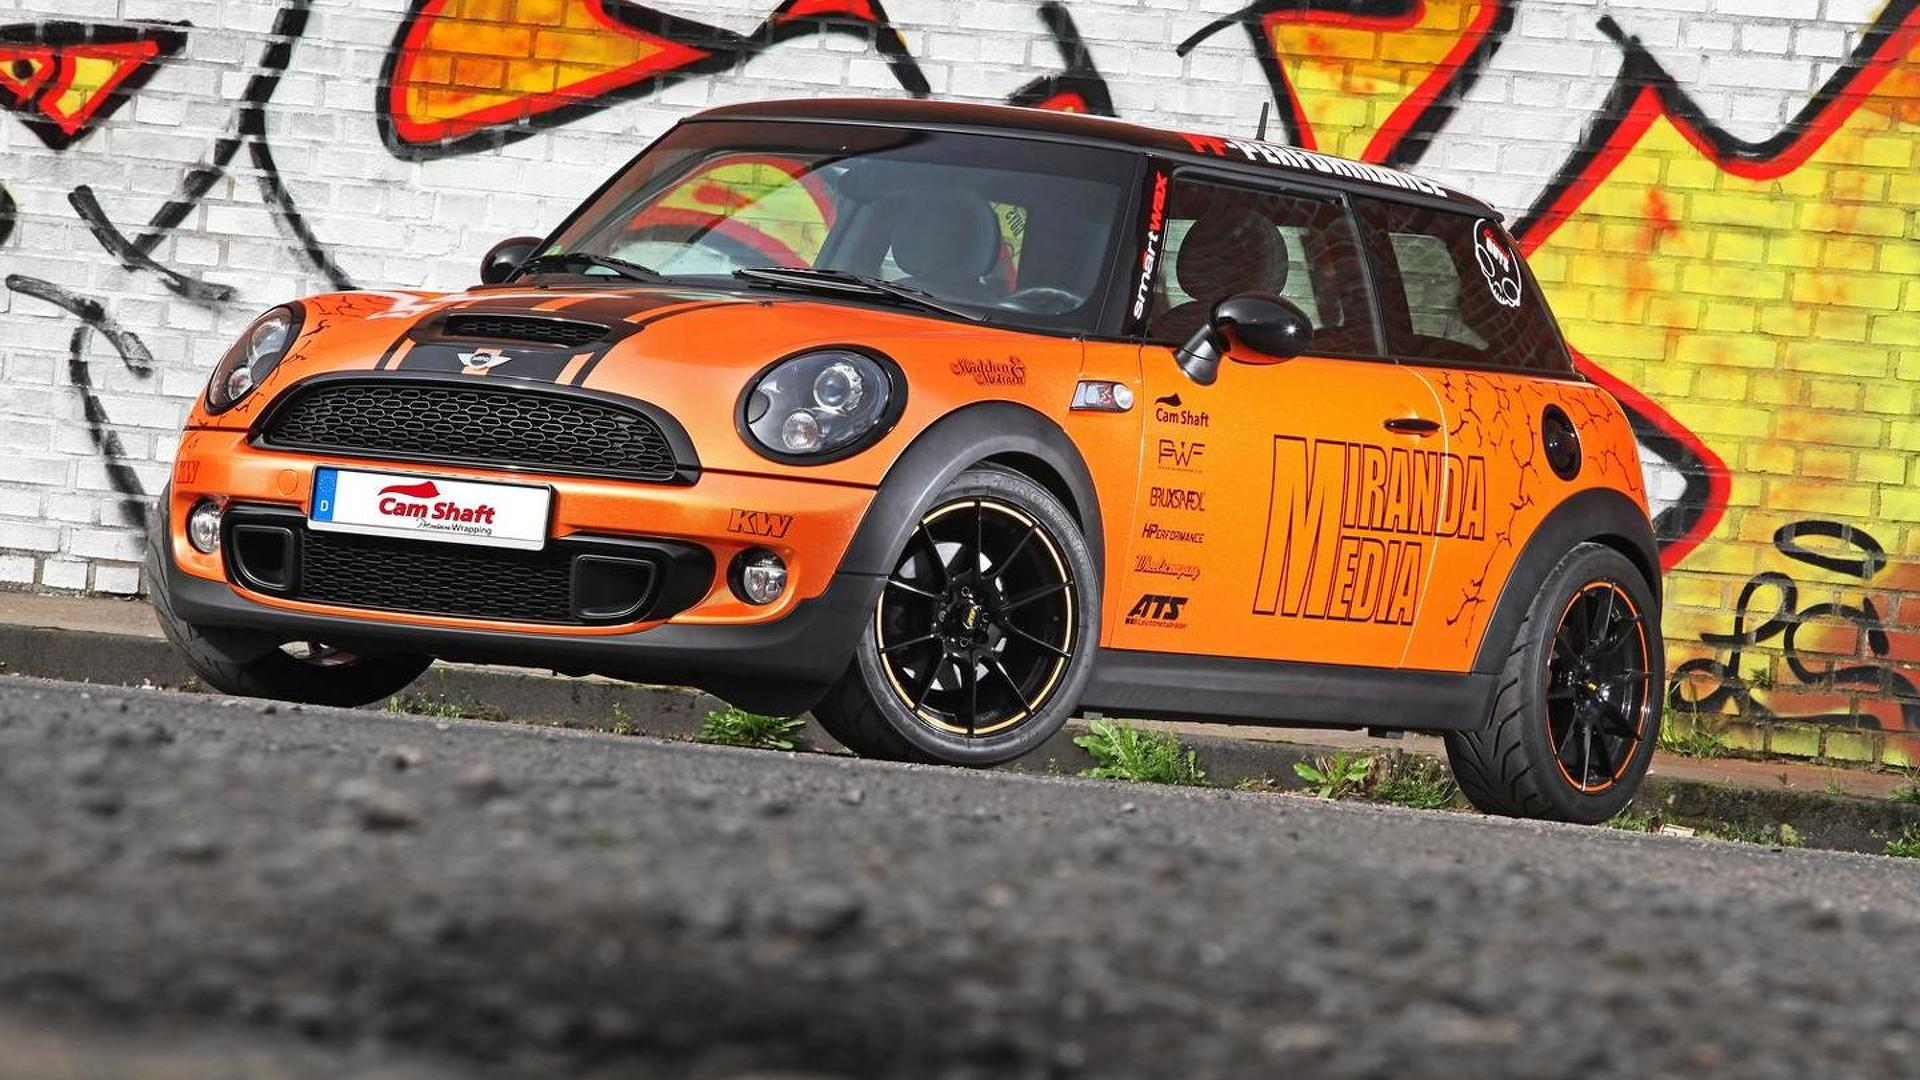 Mini Cooper S Receives Shiny Orange Wrap And 240 Ps From Cam Shaft